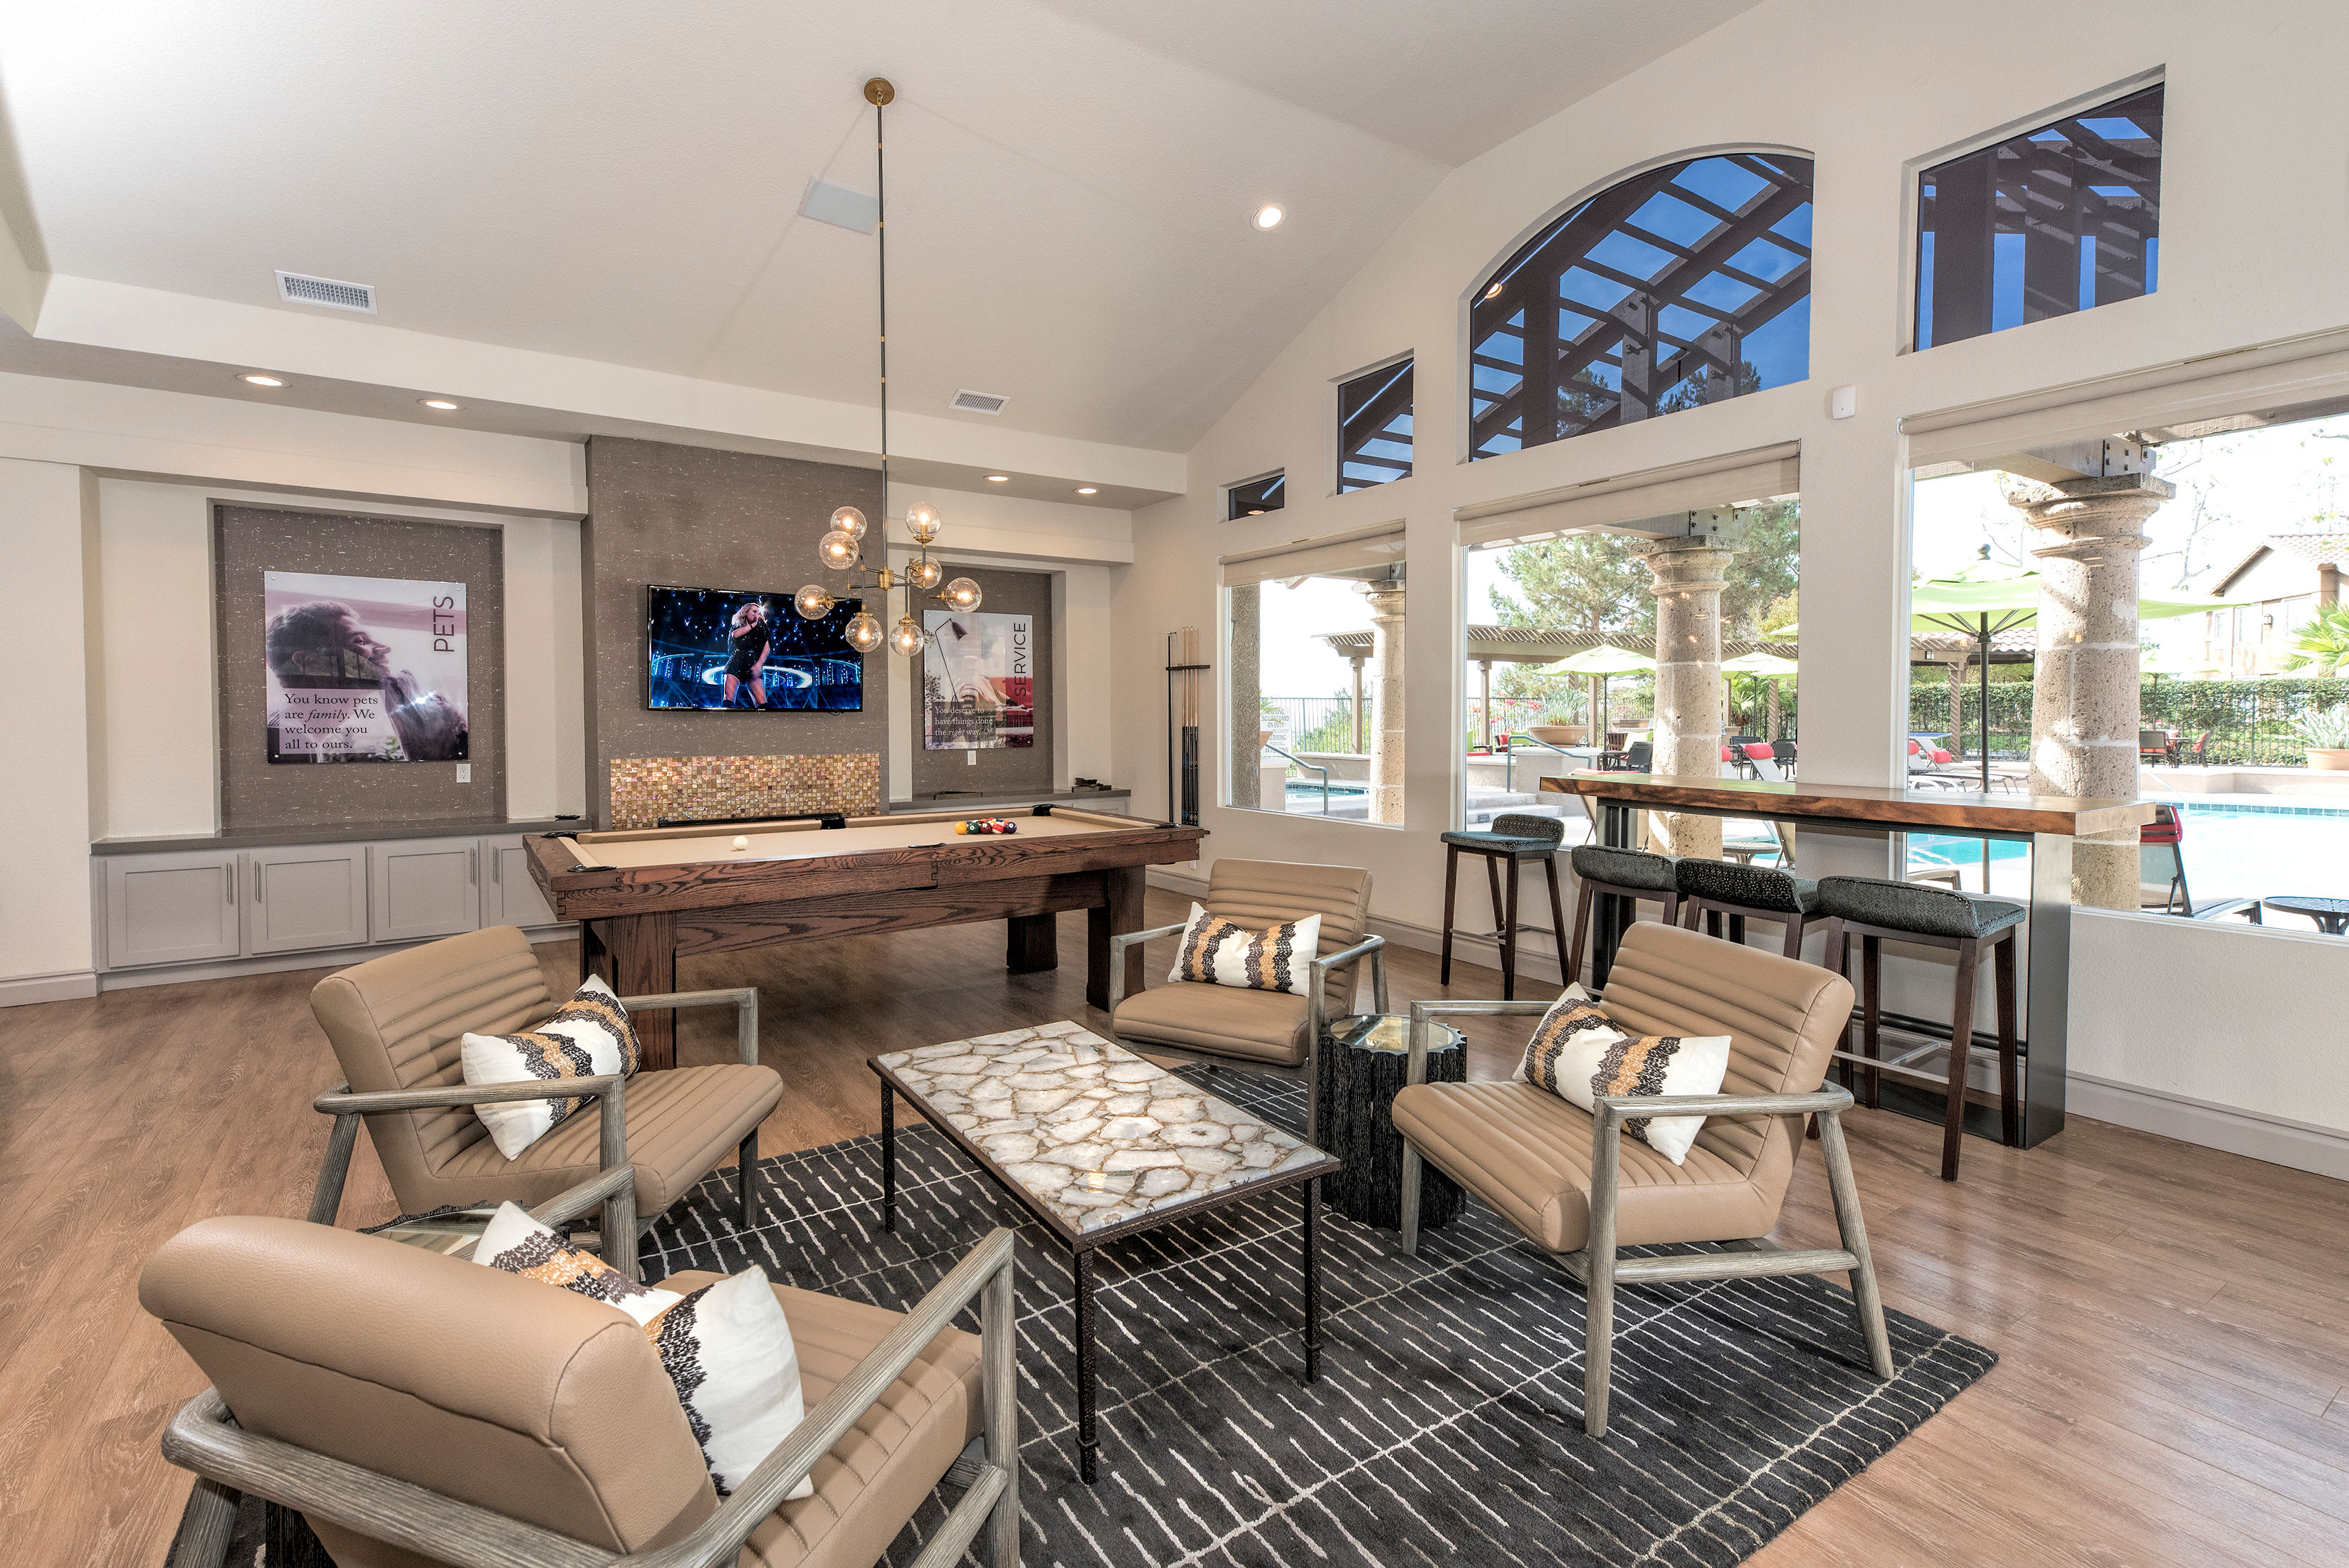 See what we have to offer by visiting Paloma Summit Condominium Rentals's amenities page.